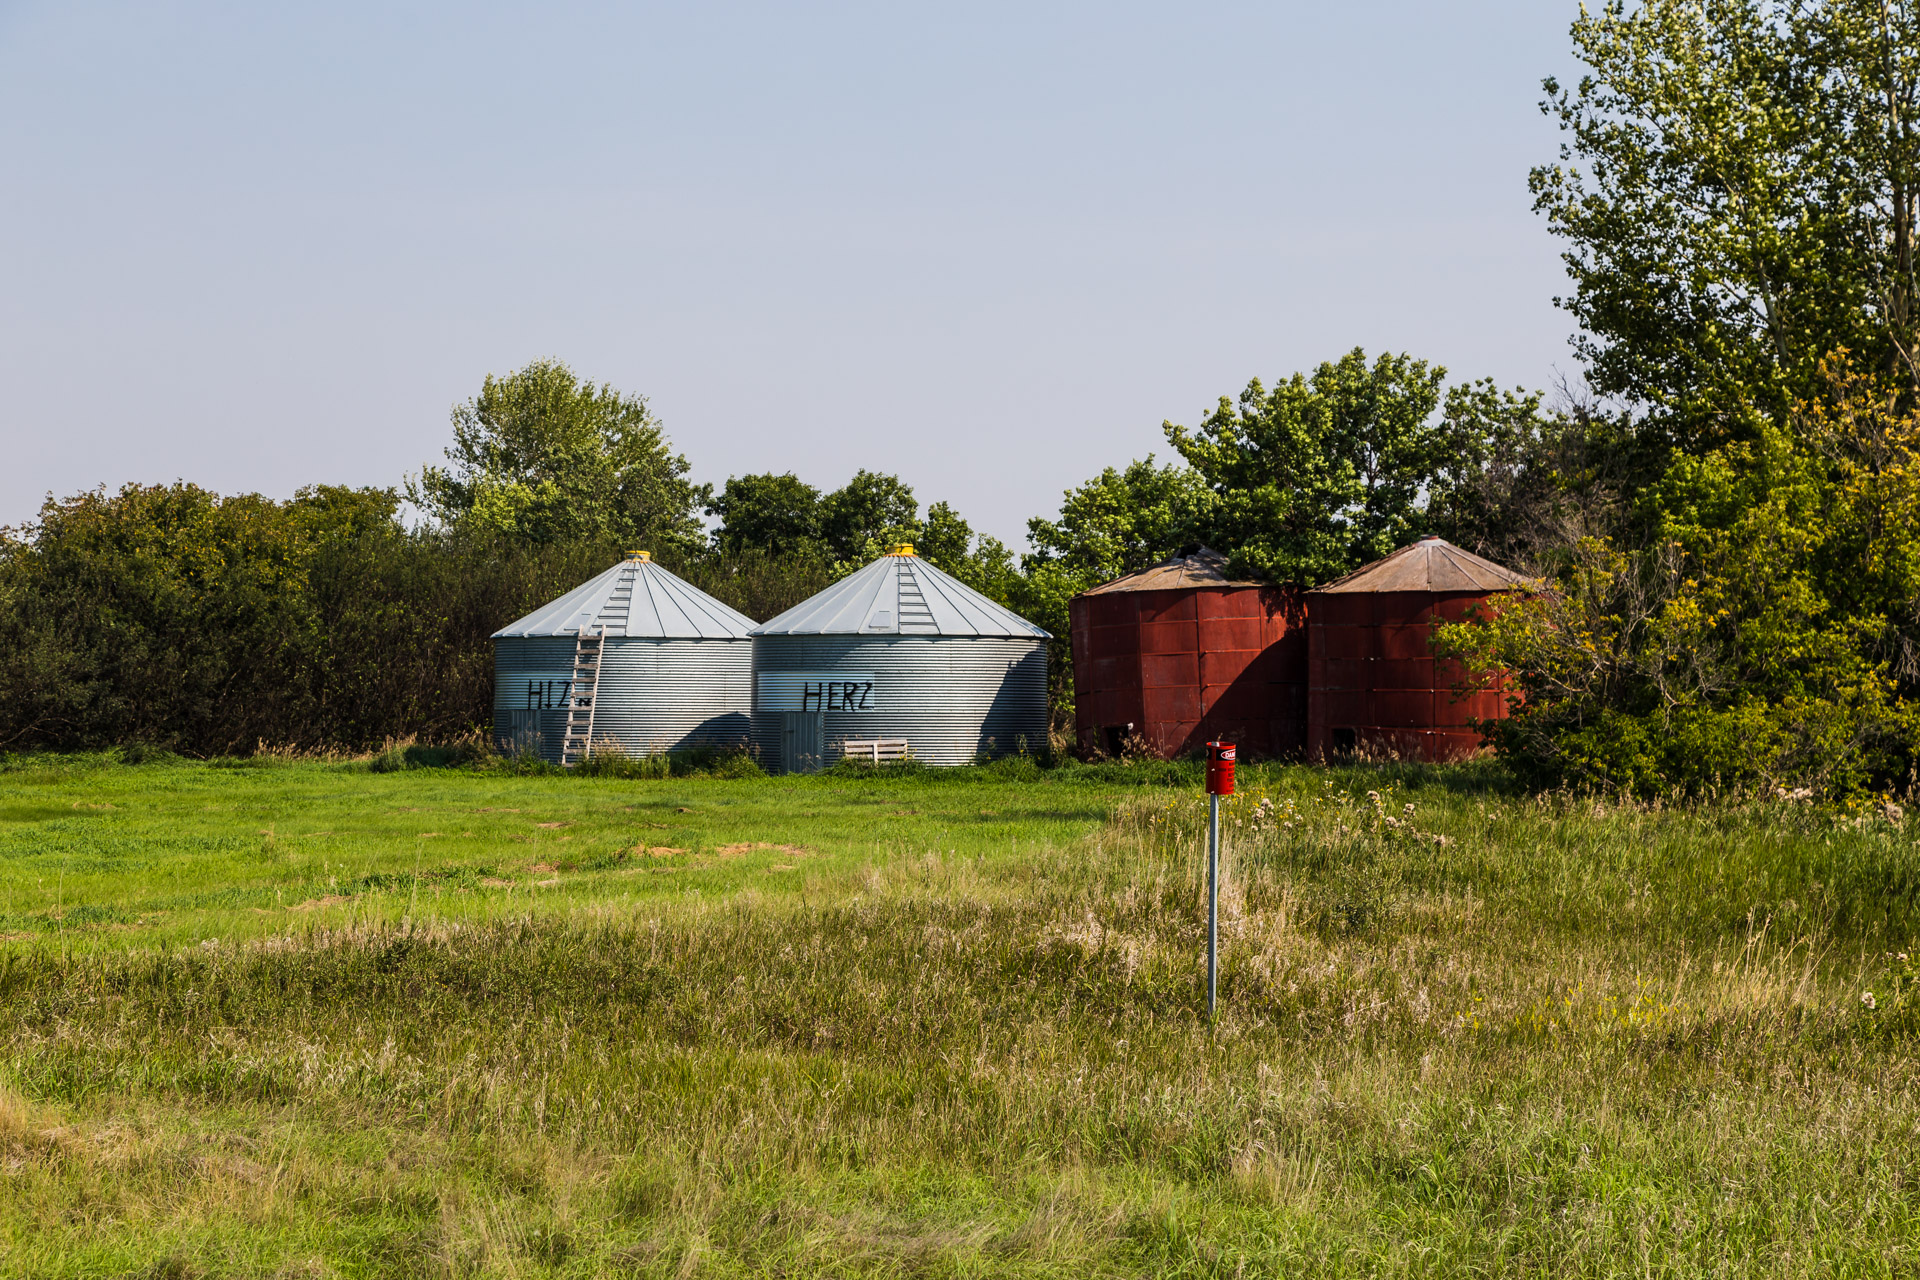 A Collection Of Barns (angle towers)